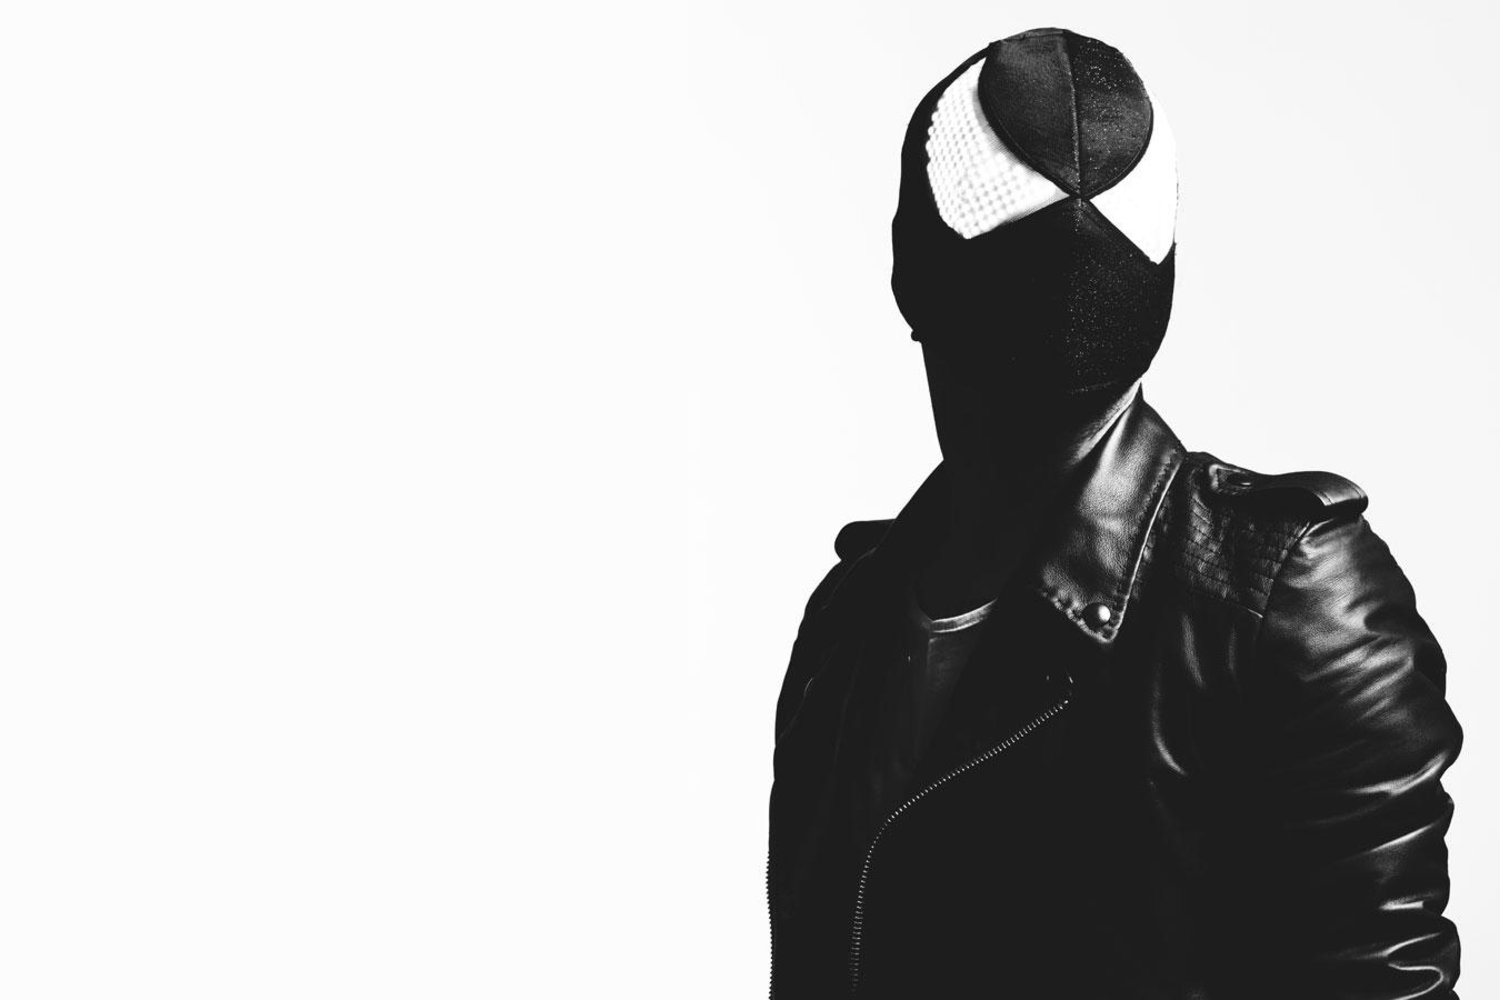 High Resolution Wallpaper | The Bloody Beetroots 1500x1000 px